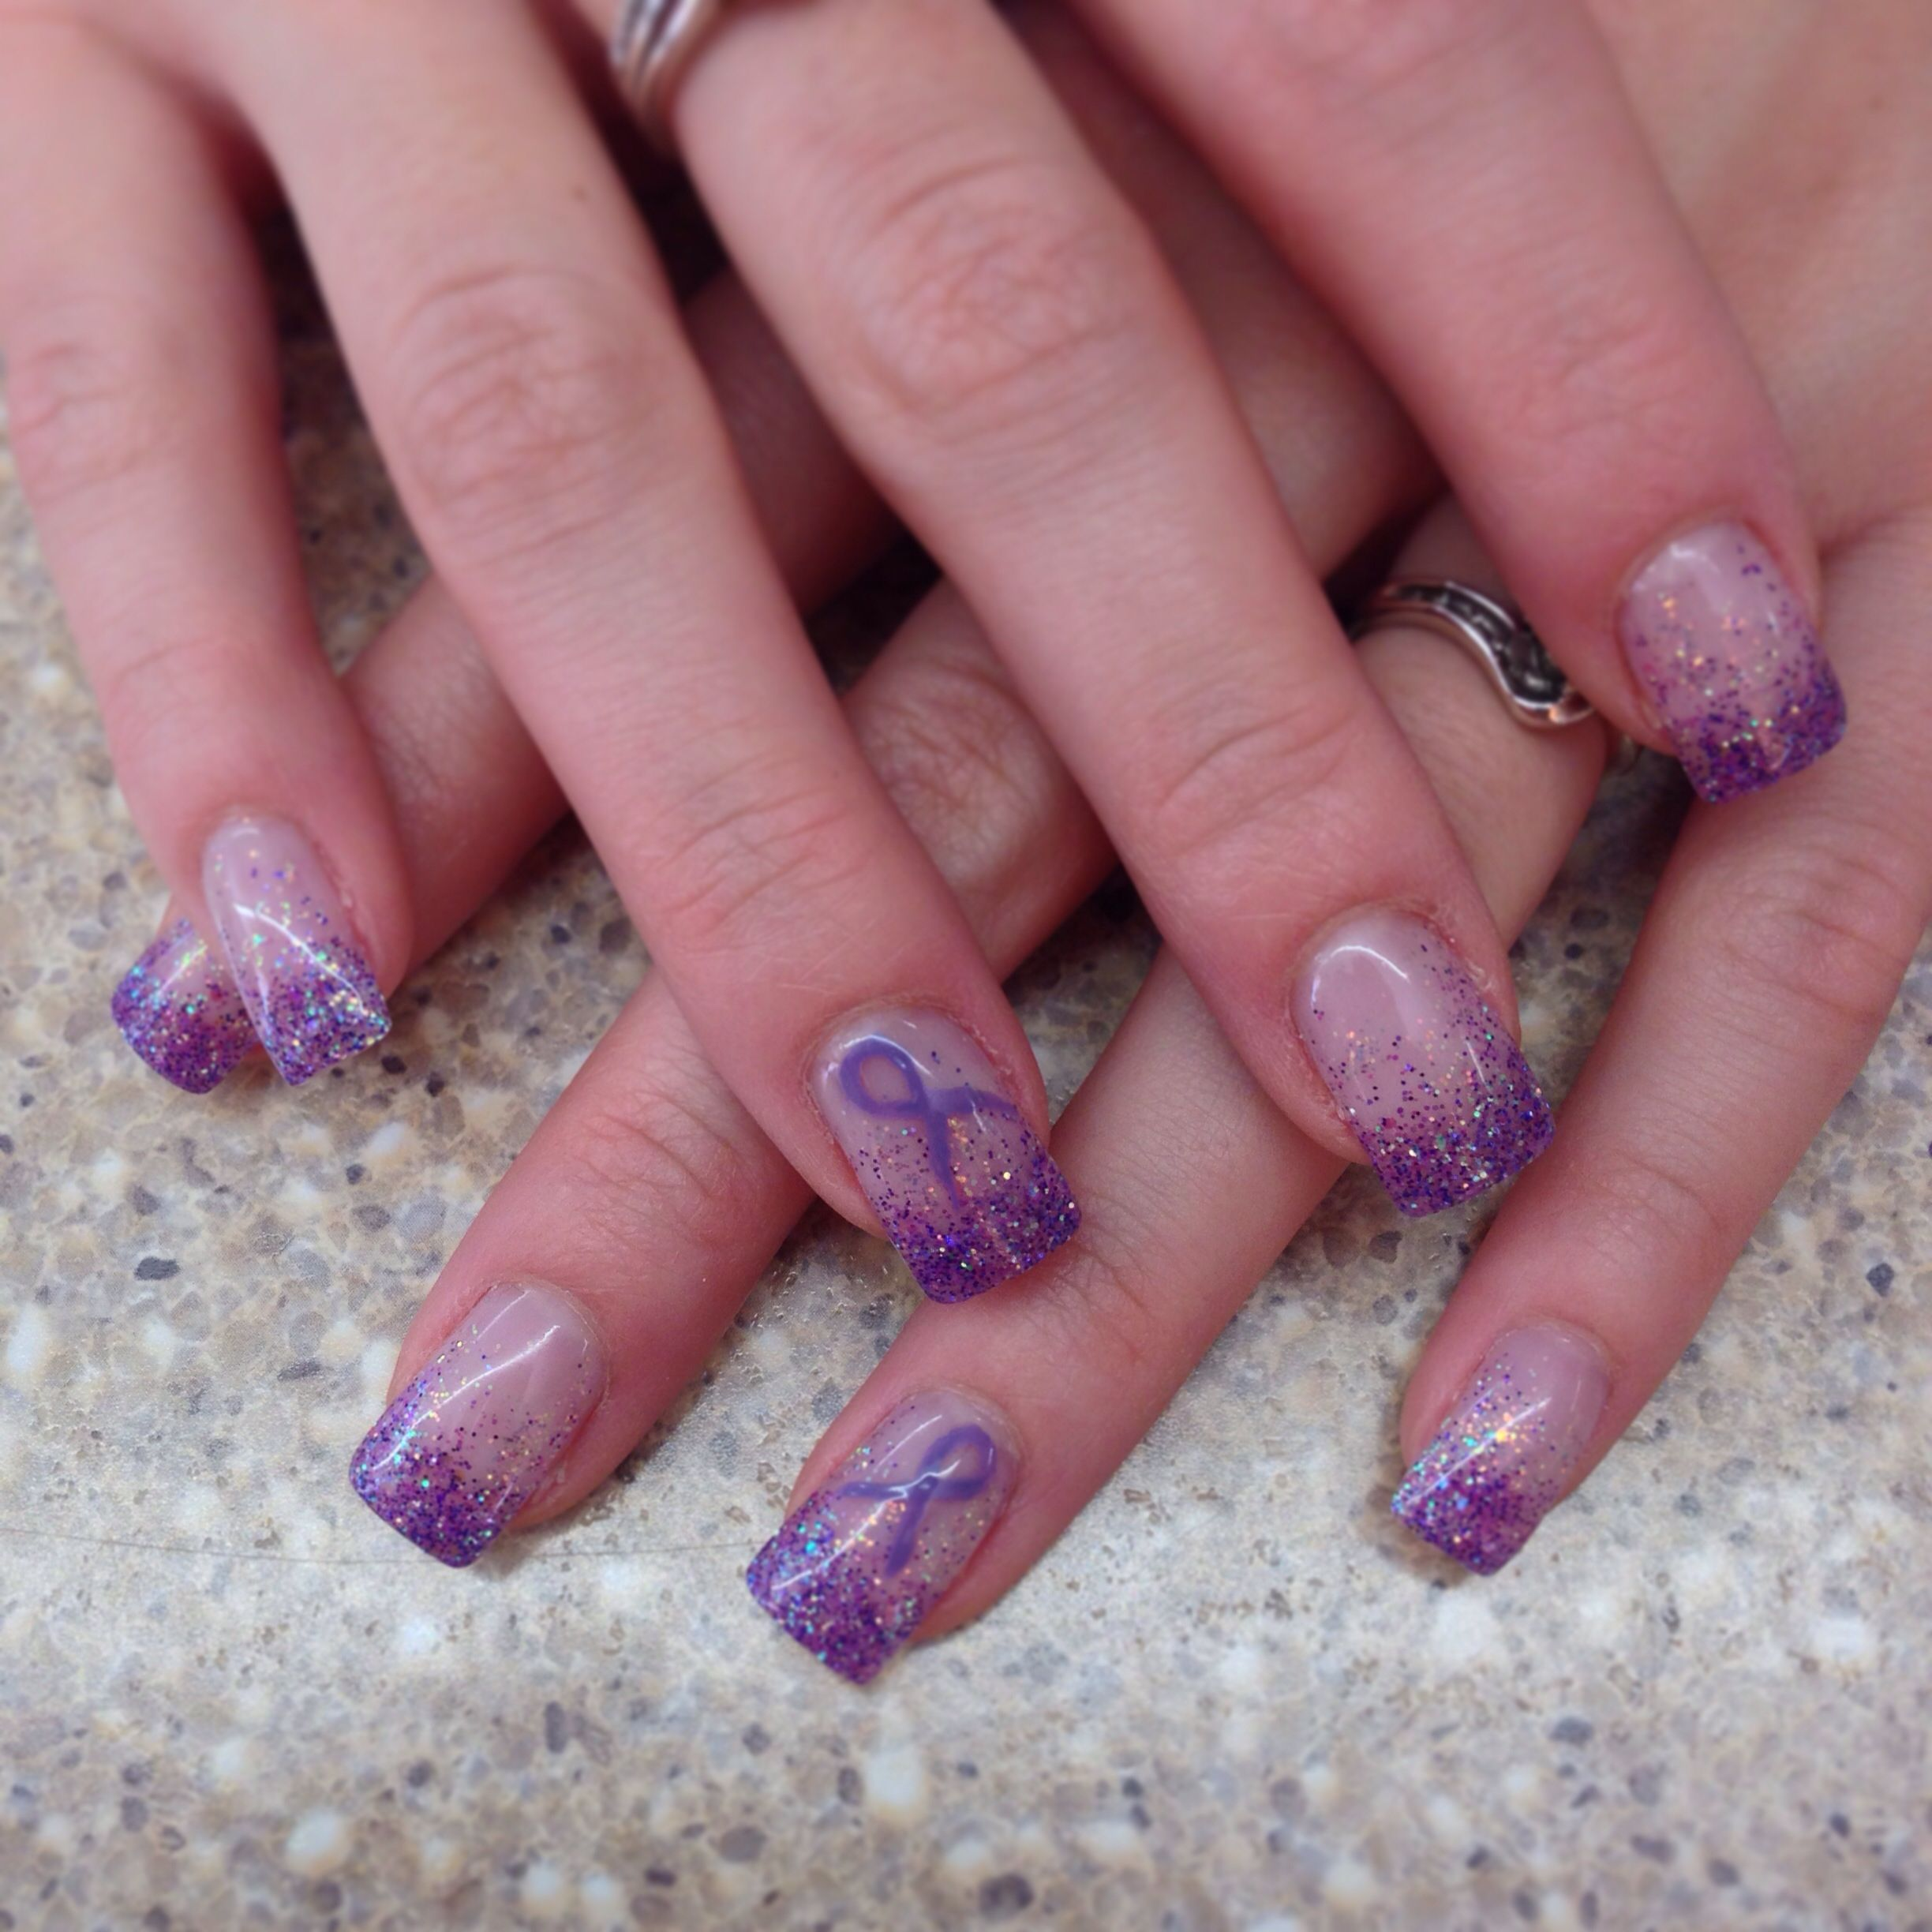 Pin By Sandy Spalding On Cure Epilepsy Purple Nail Designs Purple Nail Art Hunting Nails